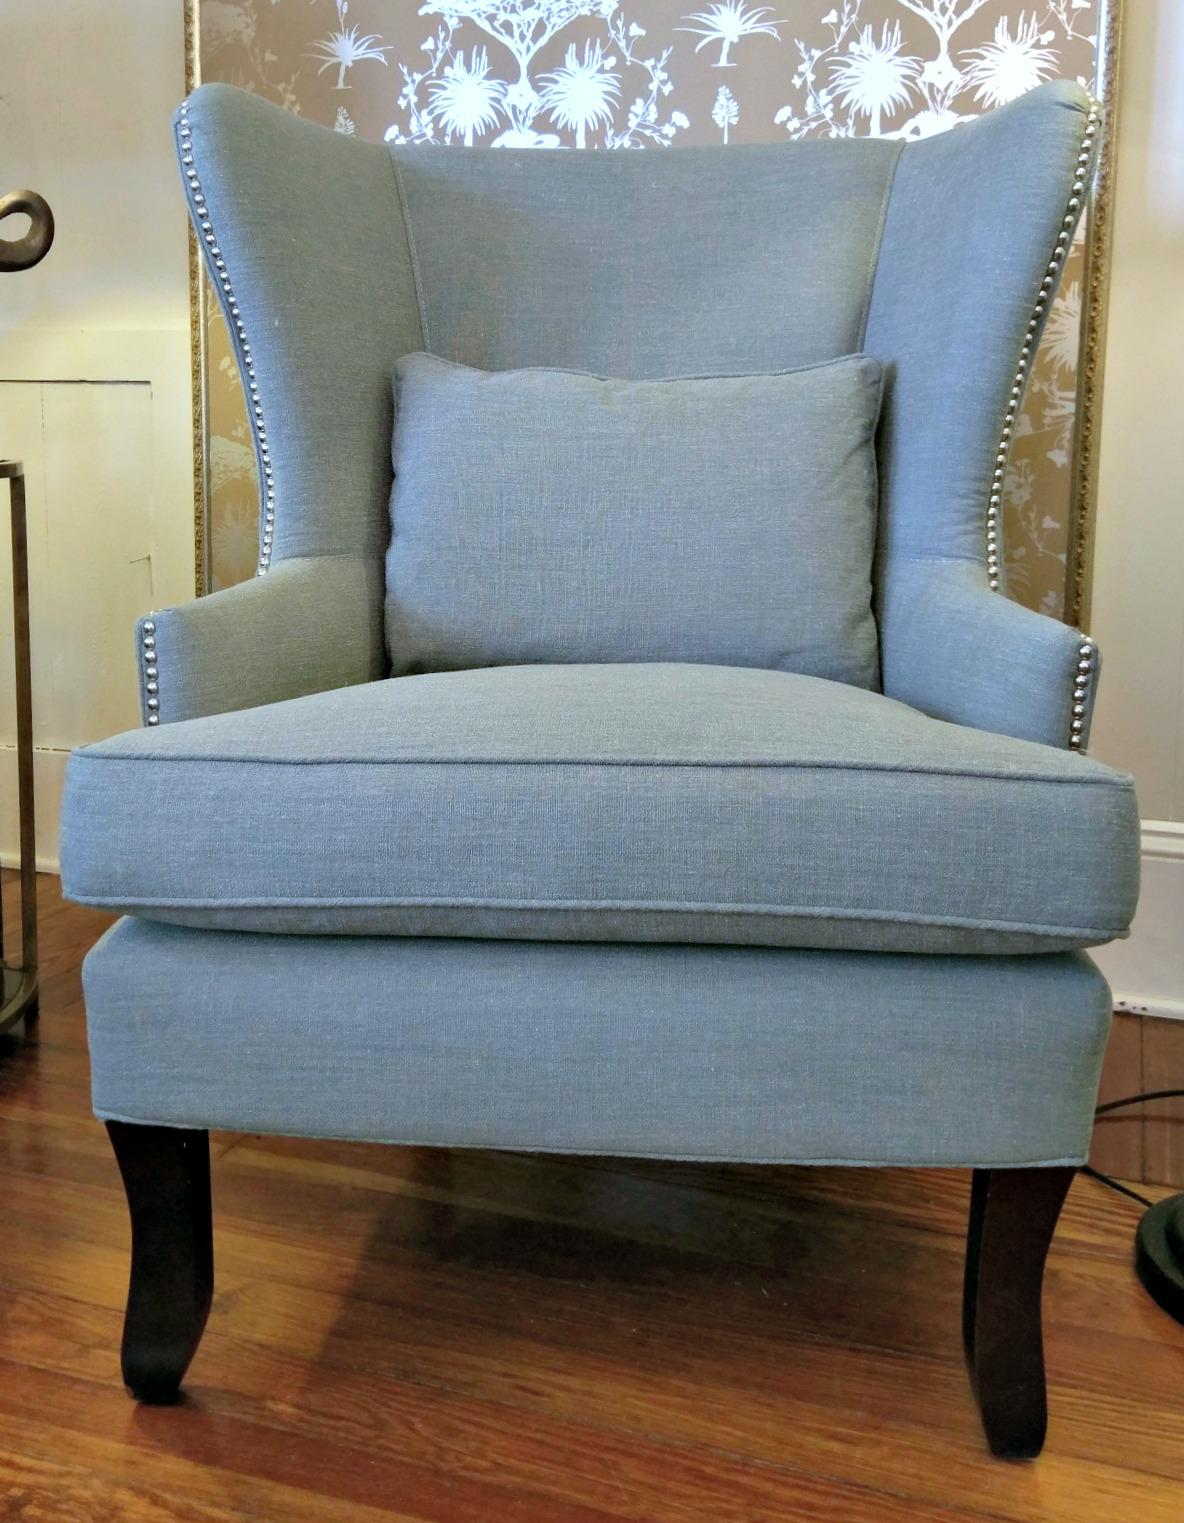 Klaussner Krauss Oversized Nailhead Detail Wingback Chair   Image 2 Of 5